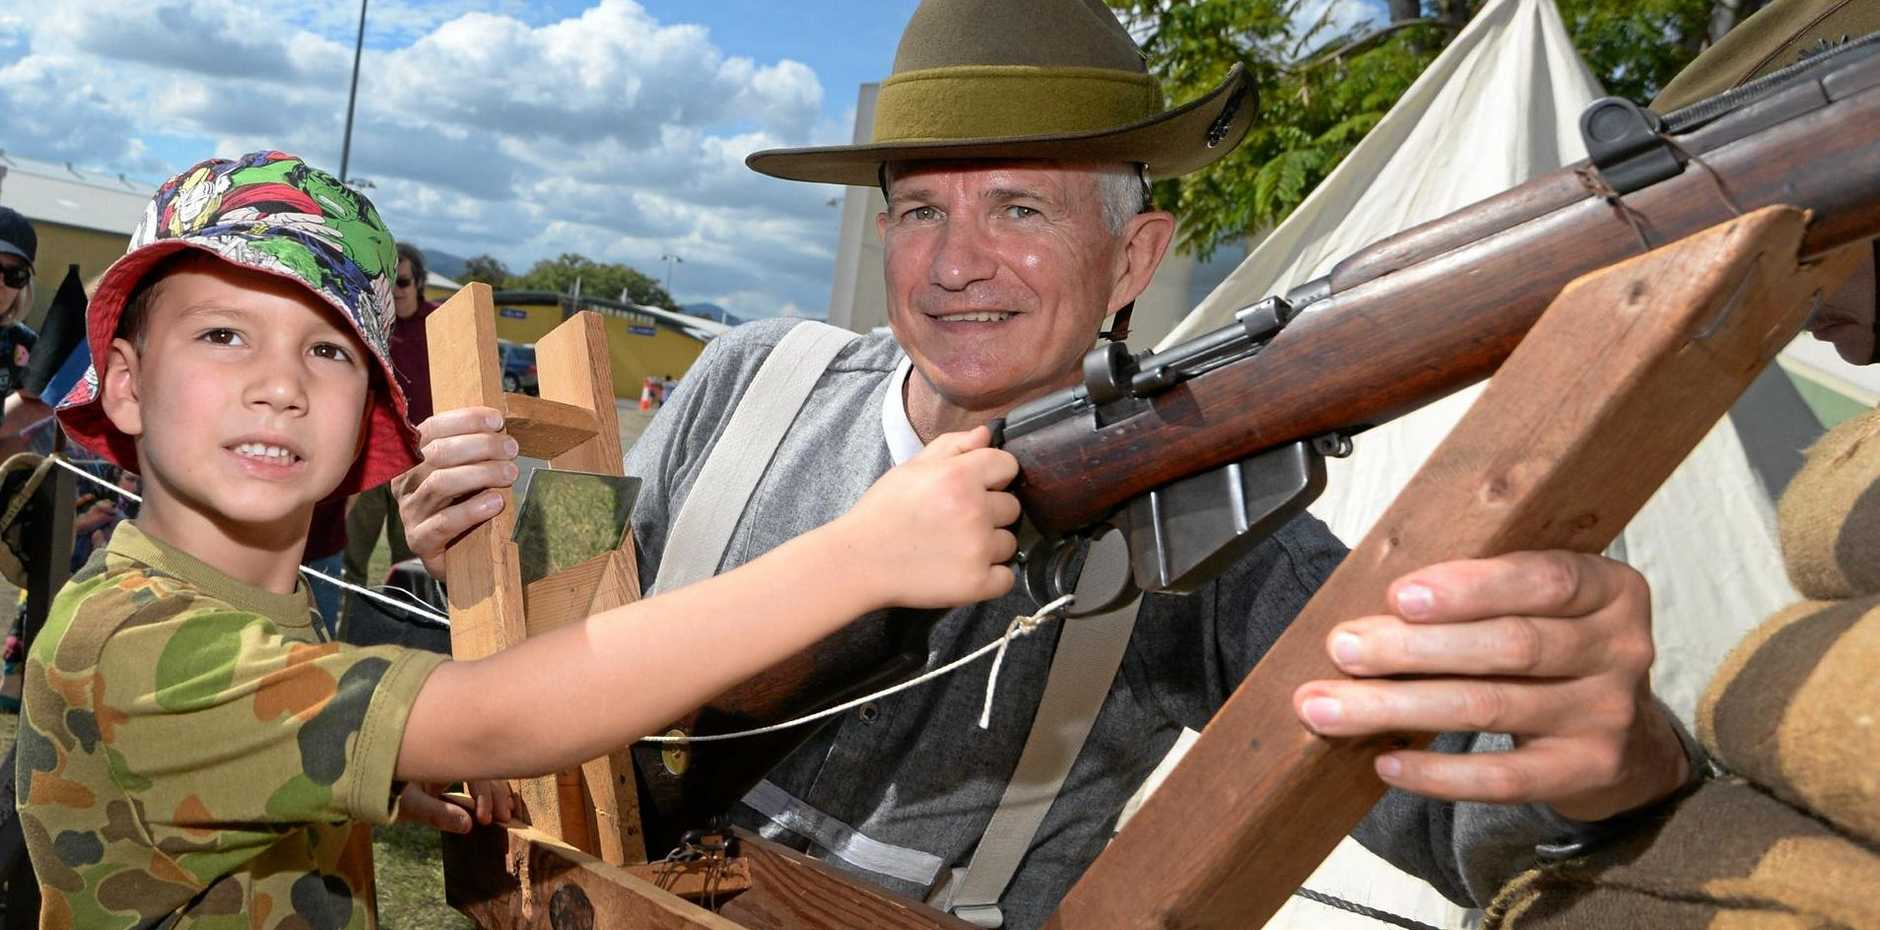 Flynn Hamiltaon (5) and David Bell from the 9th Bn Living History Unit at the Talisman Sabre open day at the Rockhampton Show Grounds on Saturday.